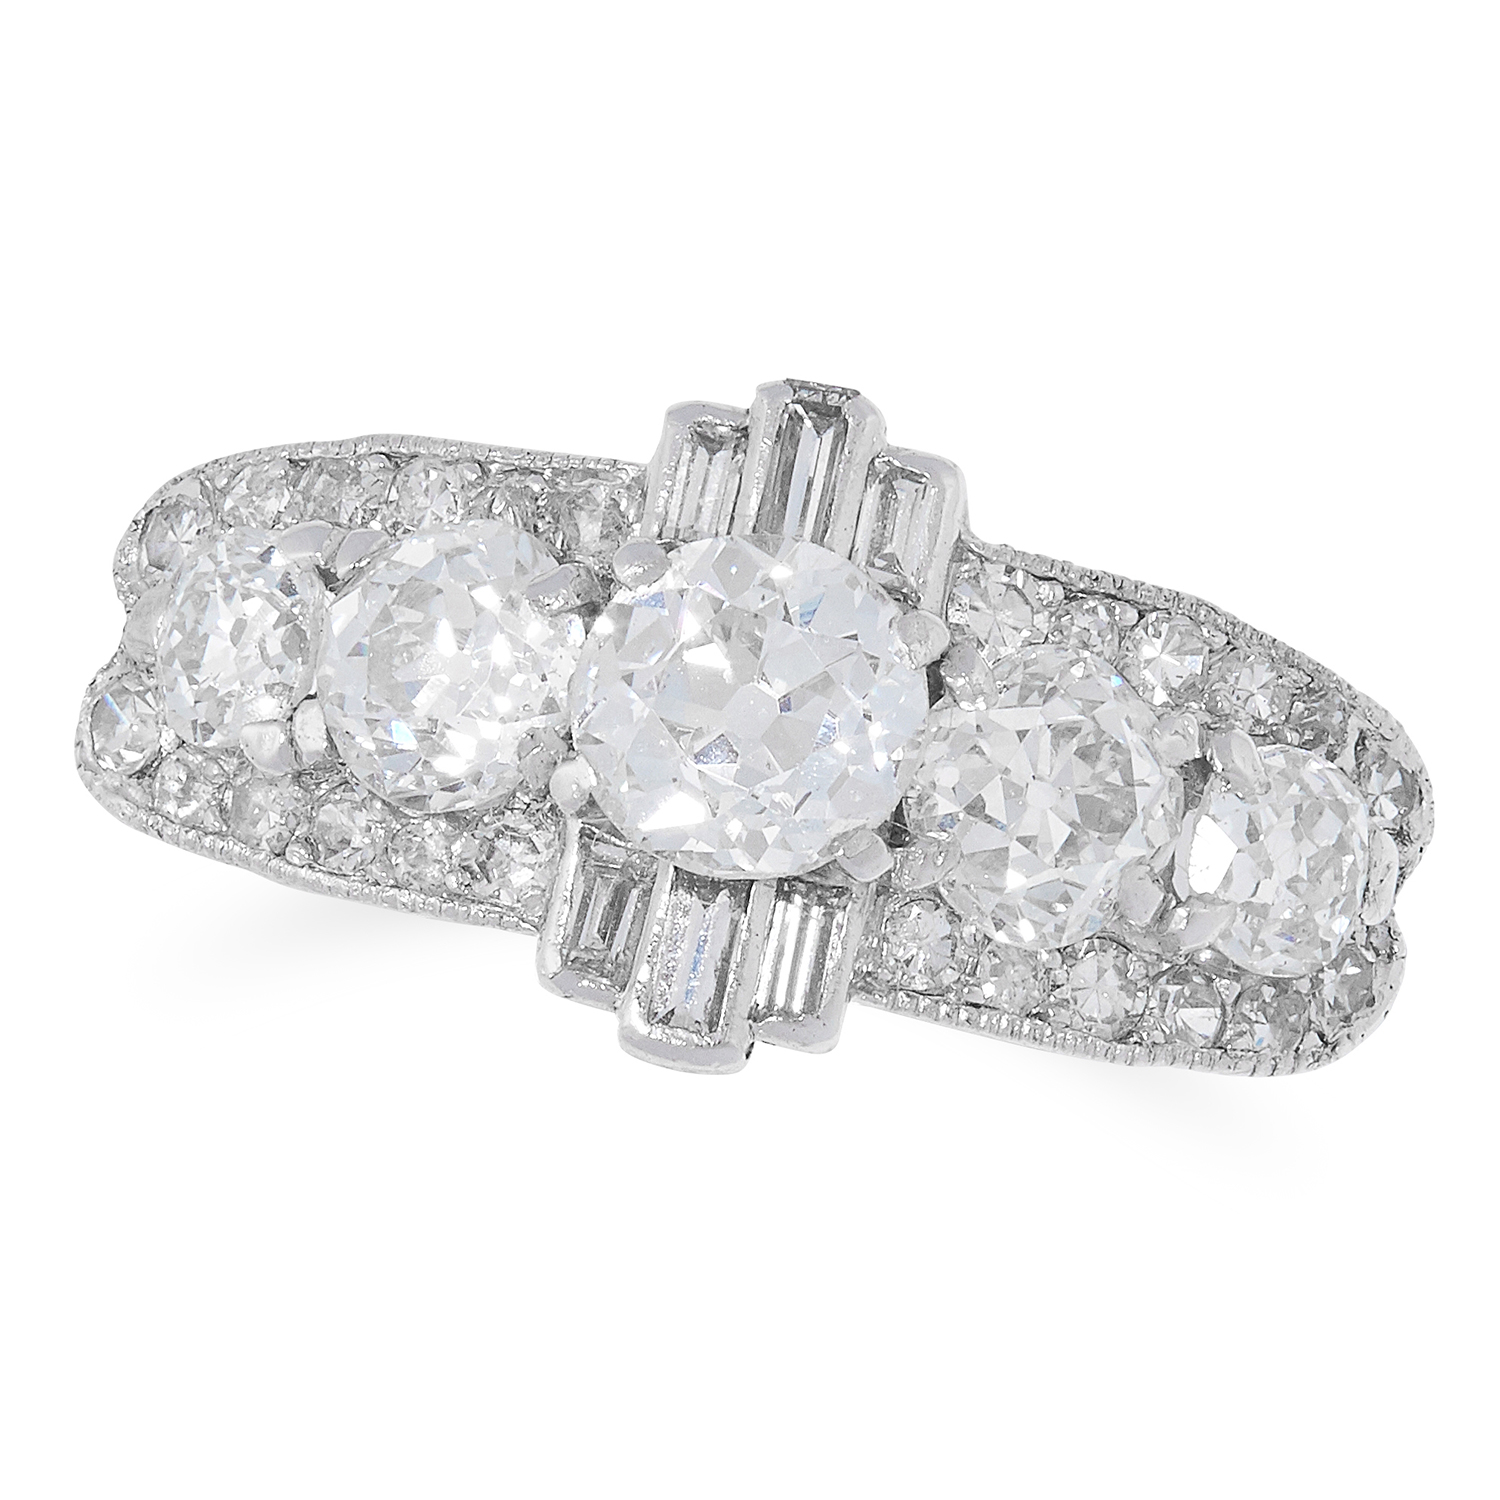 2.78 CARAT DIAMOND RING in Art Deco design set with old, round and baguette cut diamonds totalling